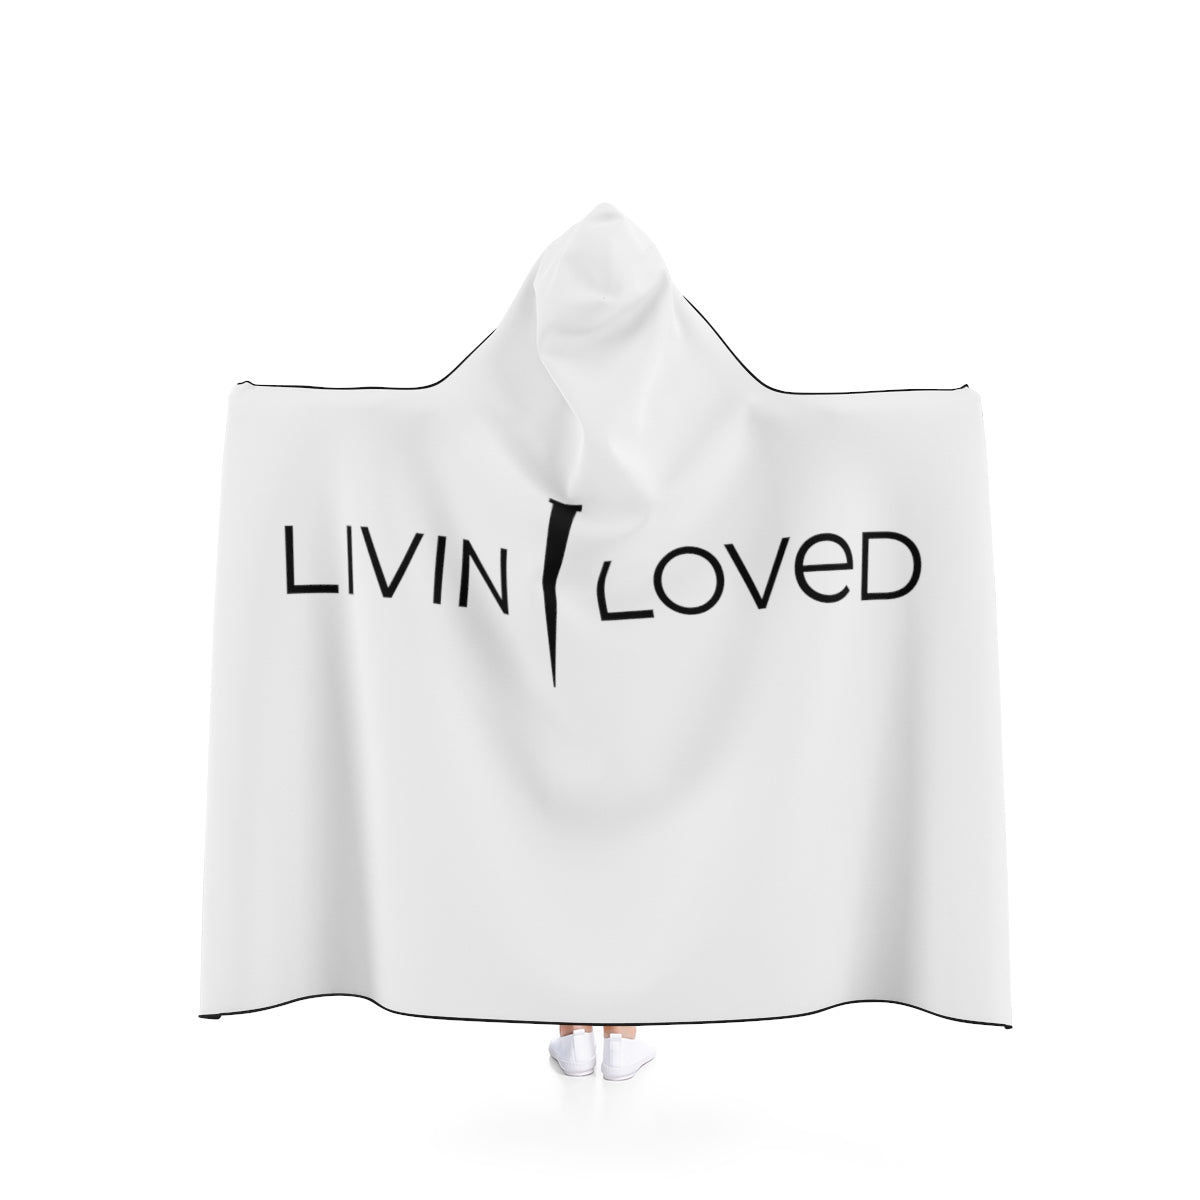 Livin Loved Hooded Blanket